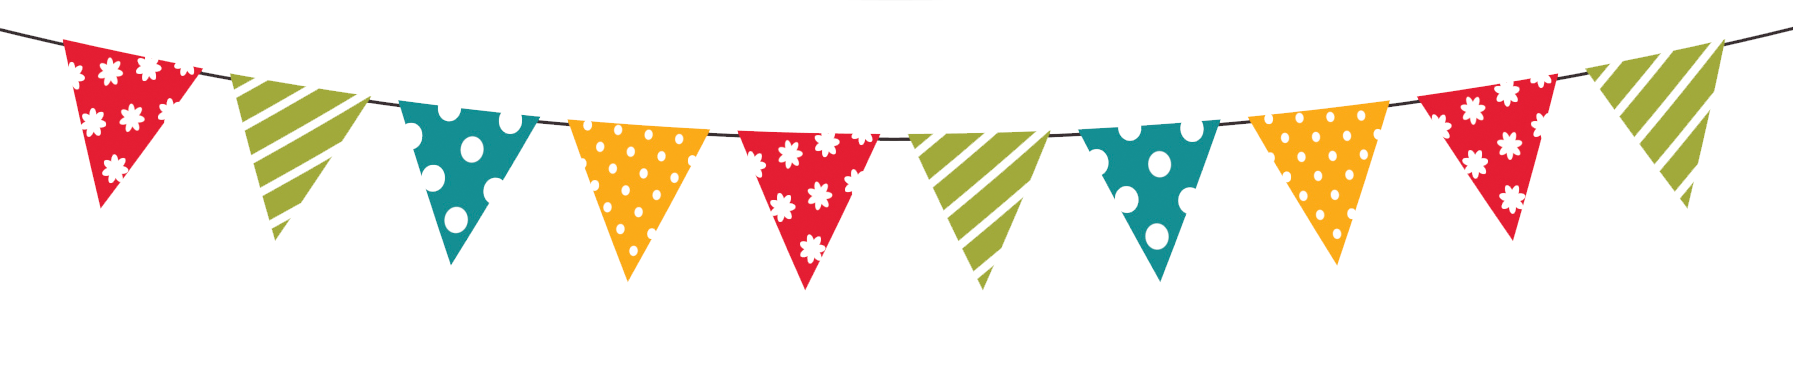 Party banners png. Happy birthday banner transparent